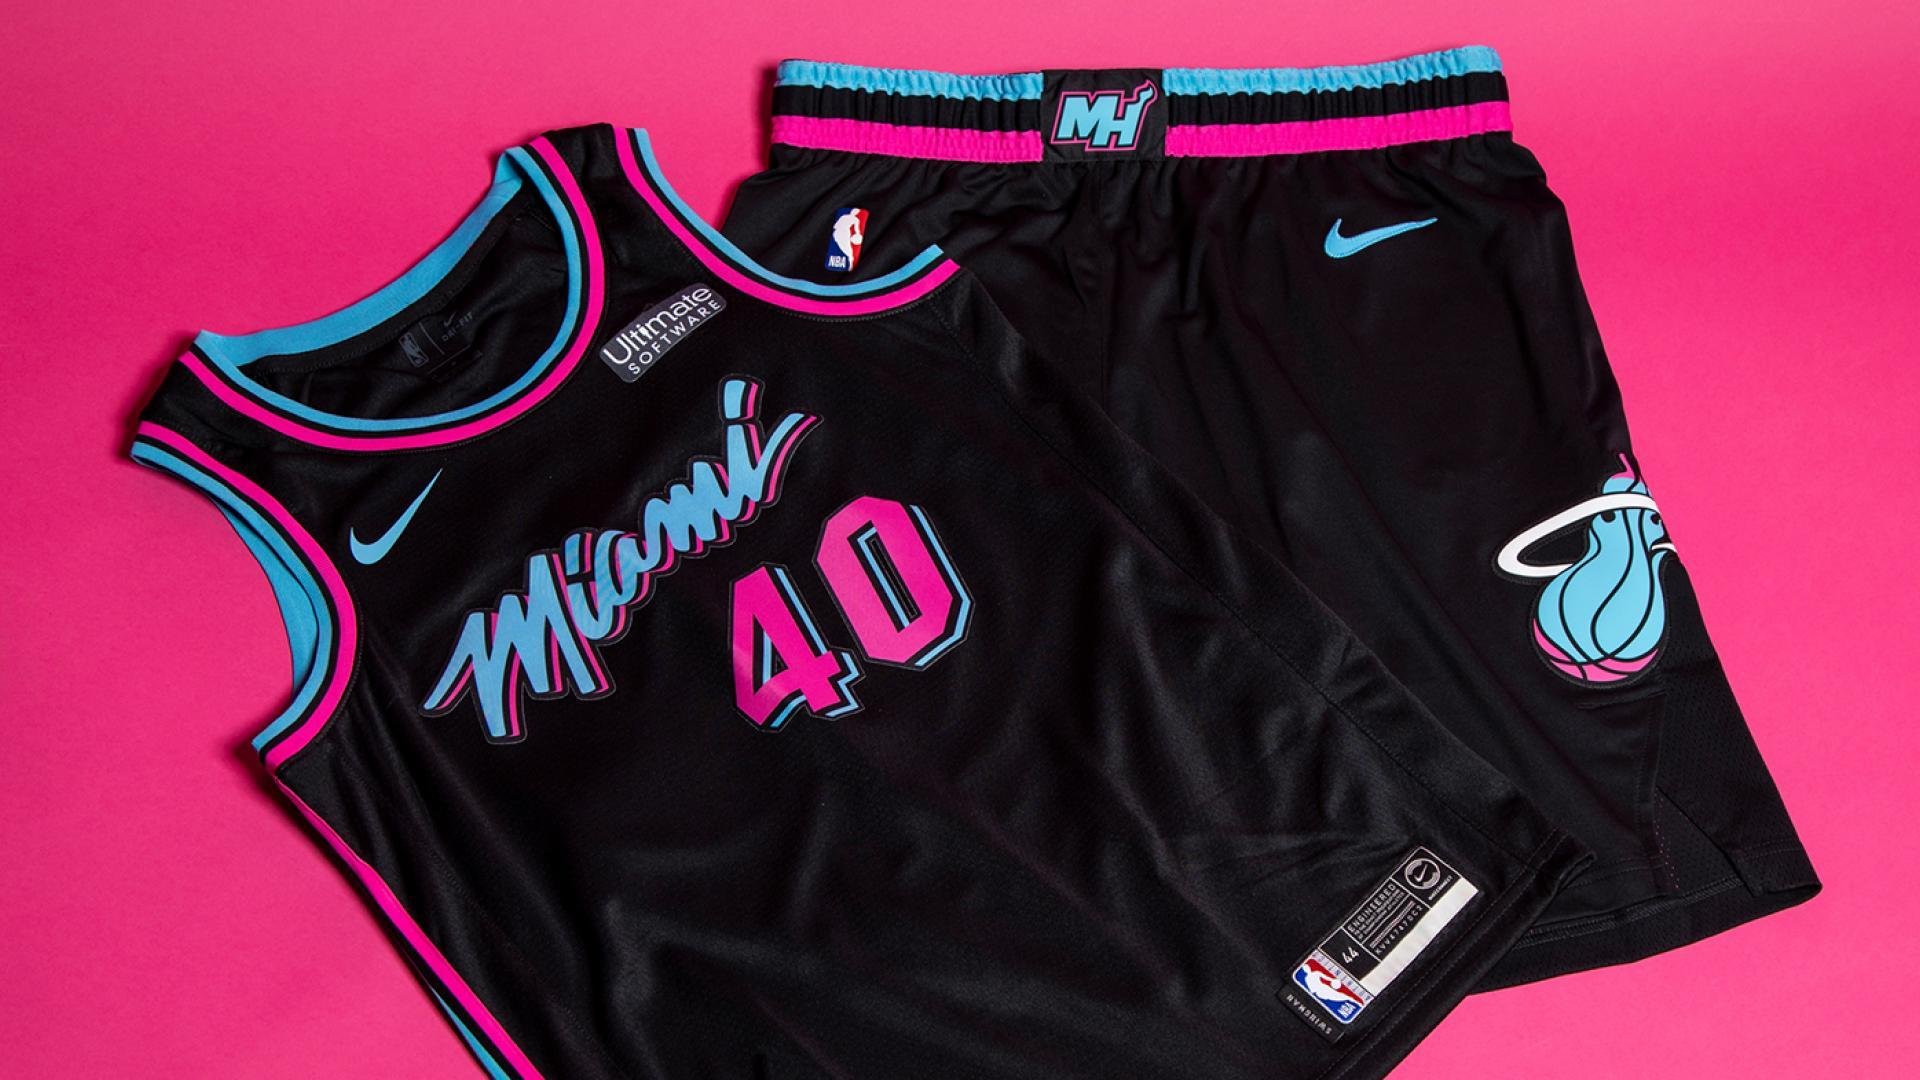 The Heat will again sport their popular